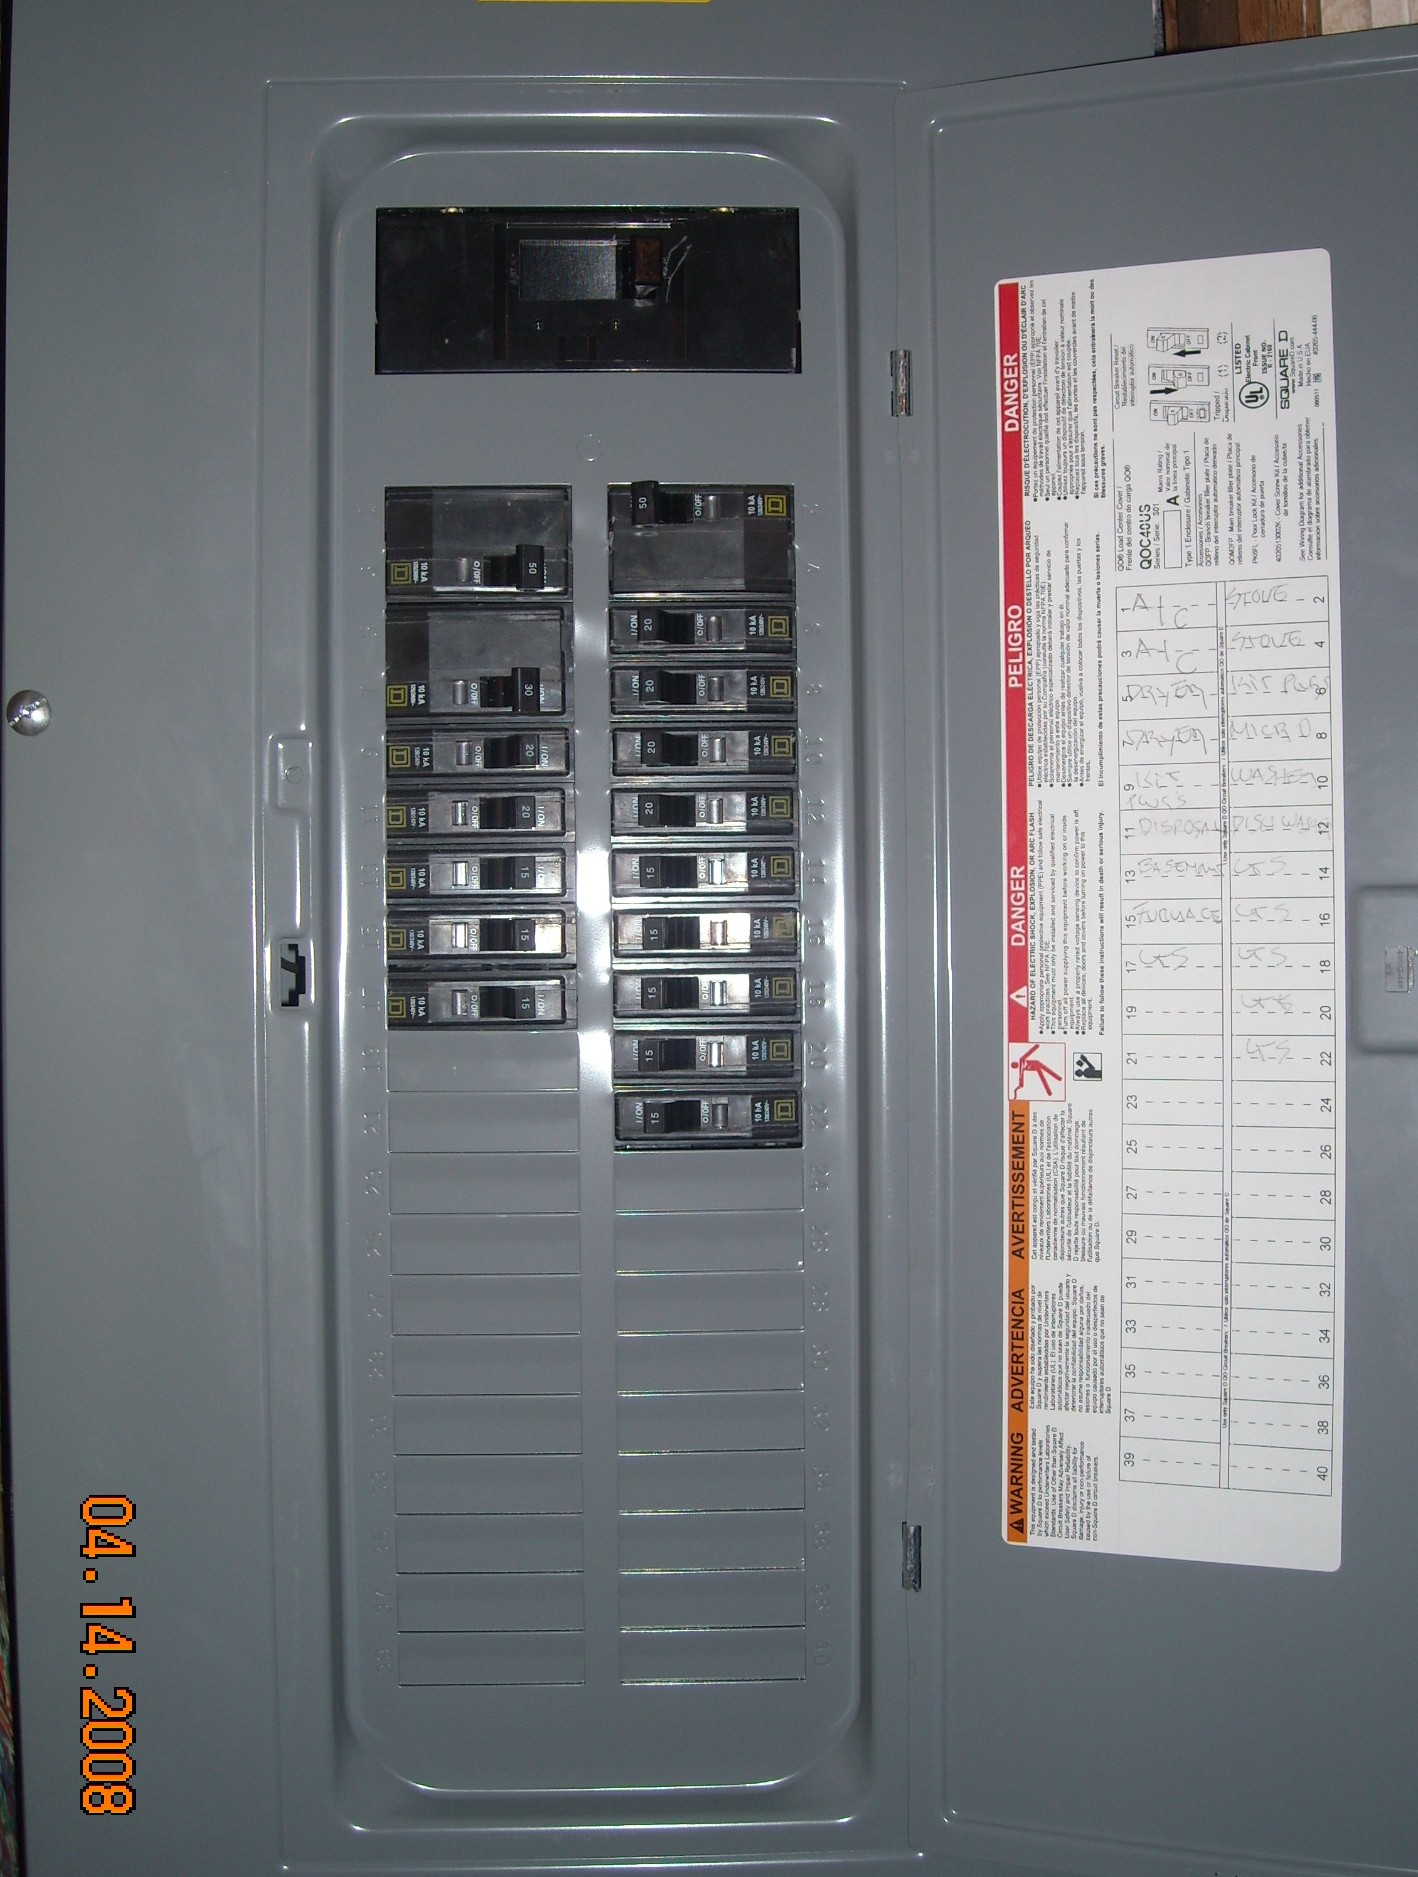 hight resolution of fuse box for house new wiring diagram house fuse box diagram fuse box for house my